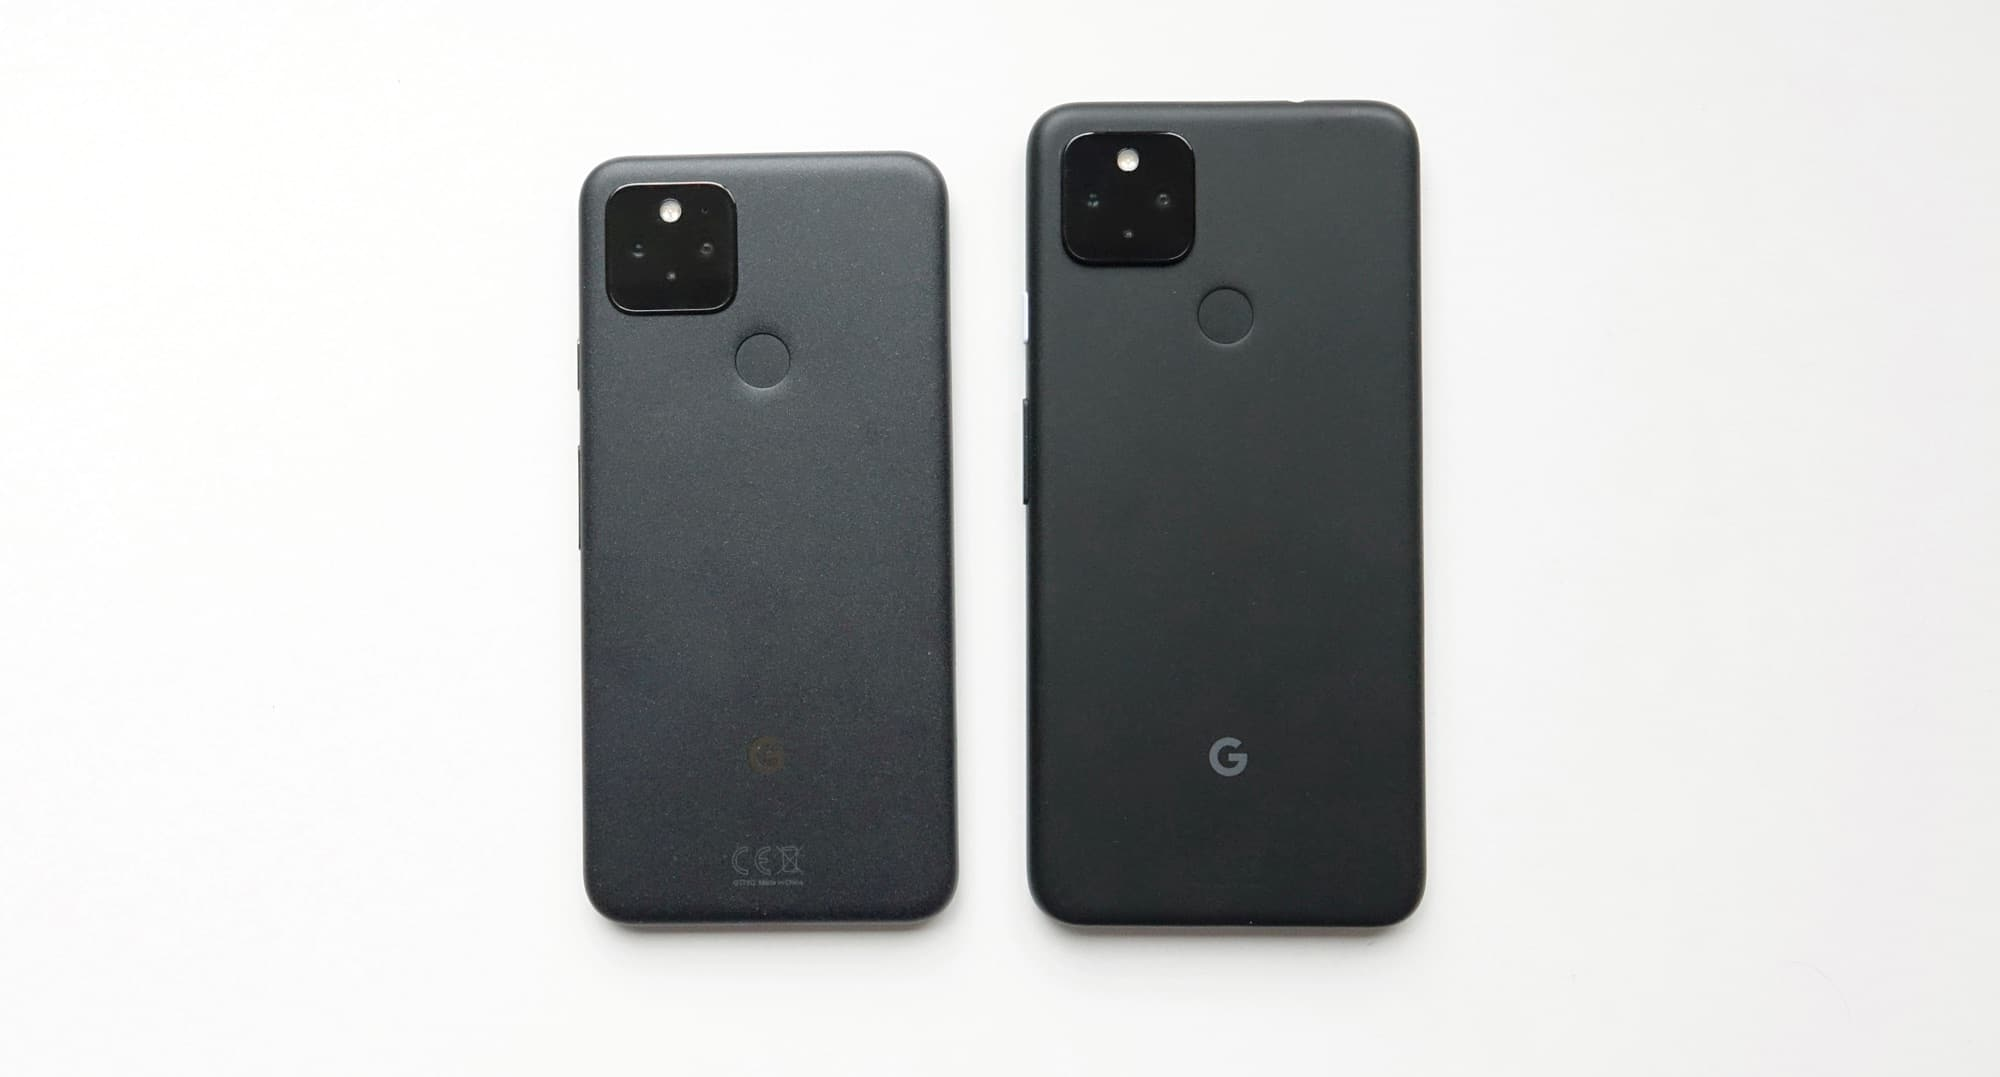 Google Pixel 5 (left) vs Google Pixel 4a with 5G (right)